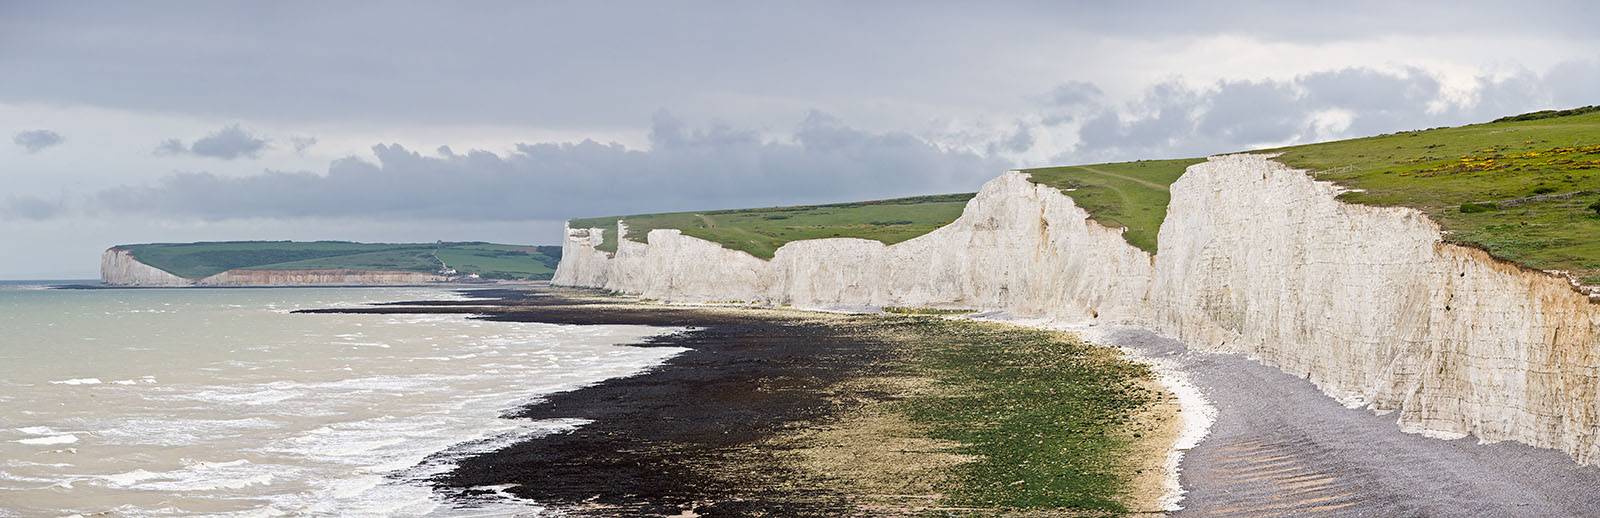 The Seven Sisters, a series of seven chalk cliff peaks along the East Sussex coast in England. Seaford head in the background is on the other side of the River Cuckmere and not part of the Seven Sisters.